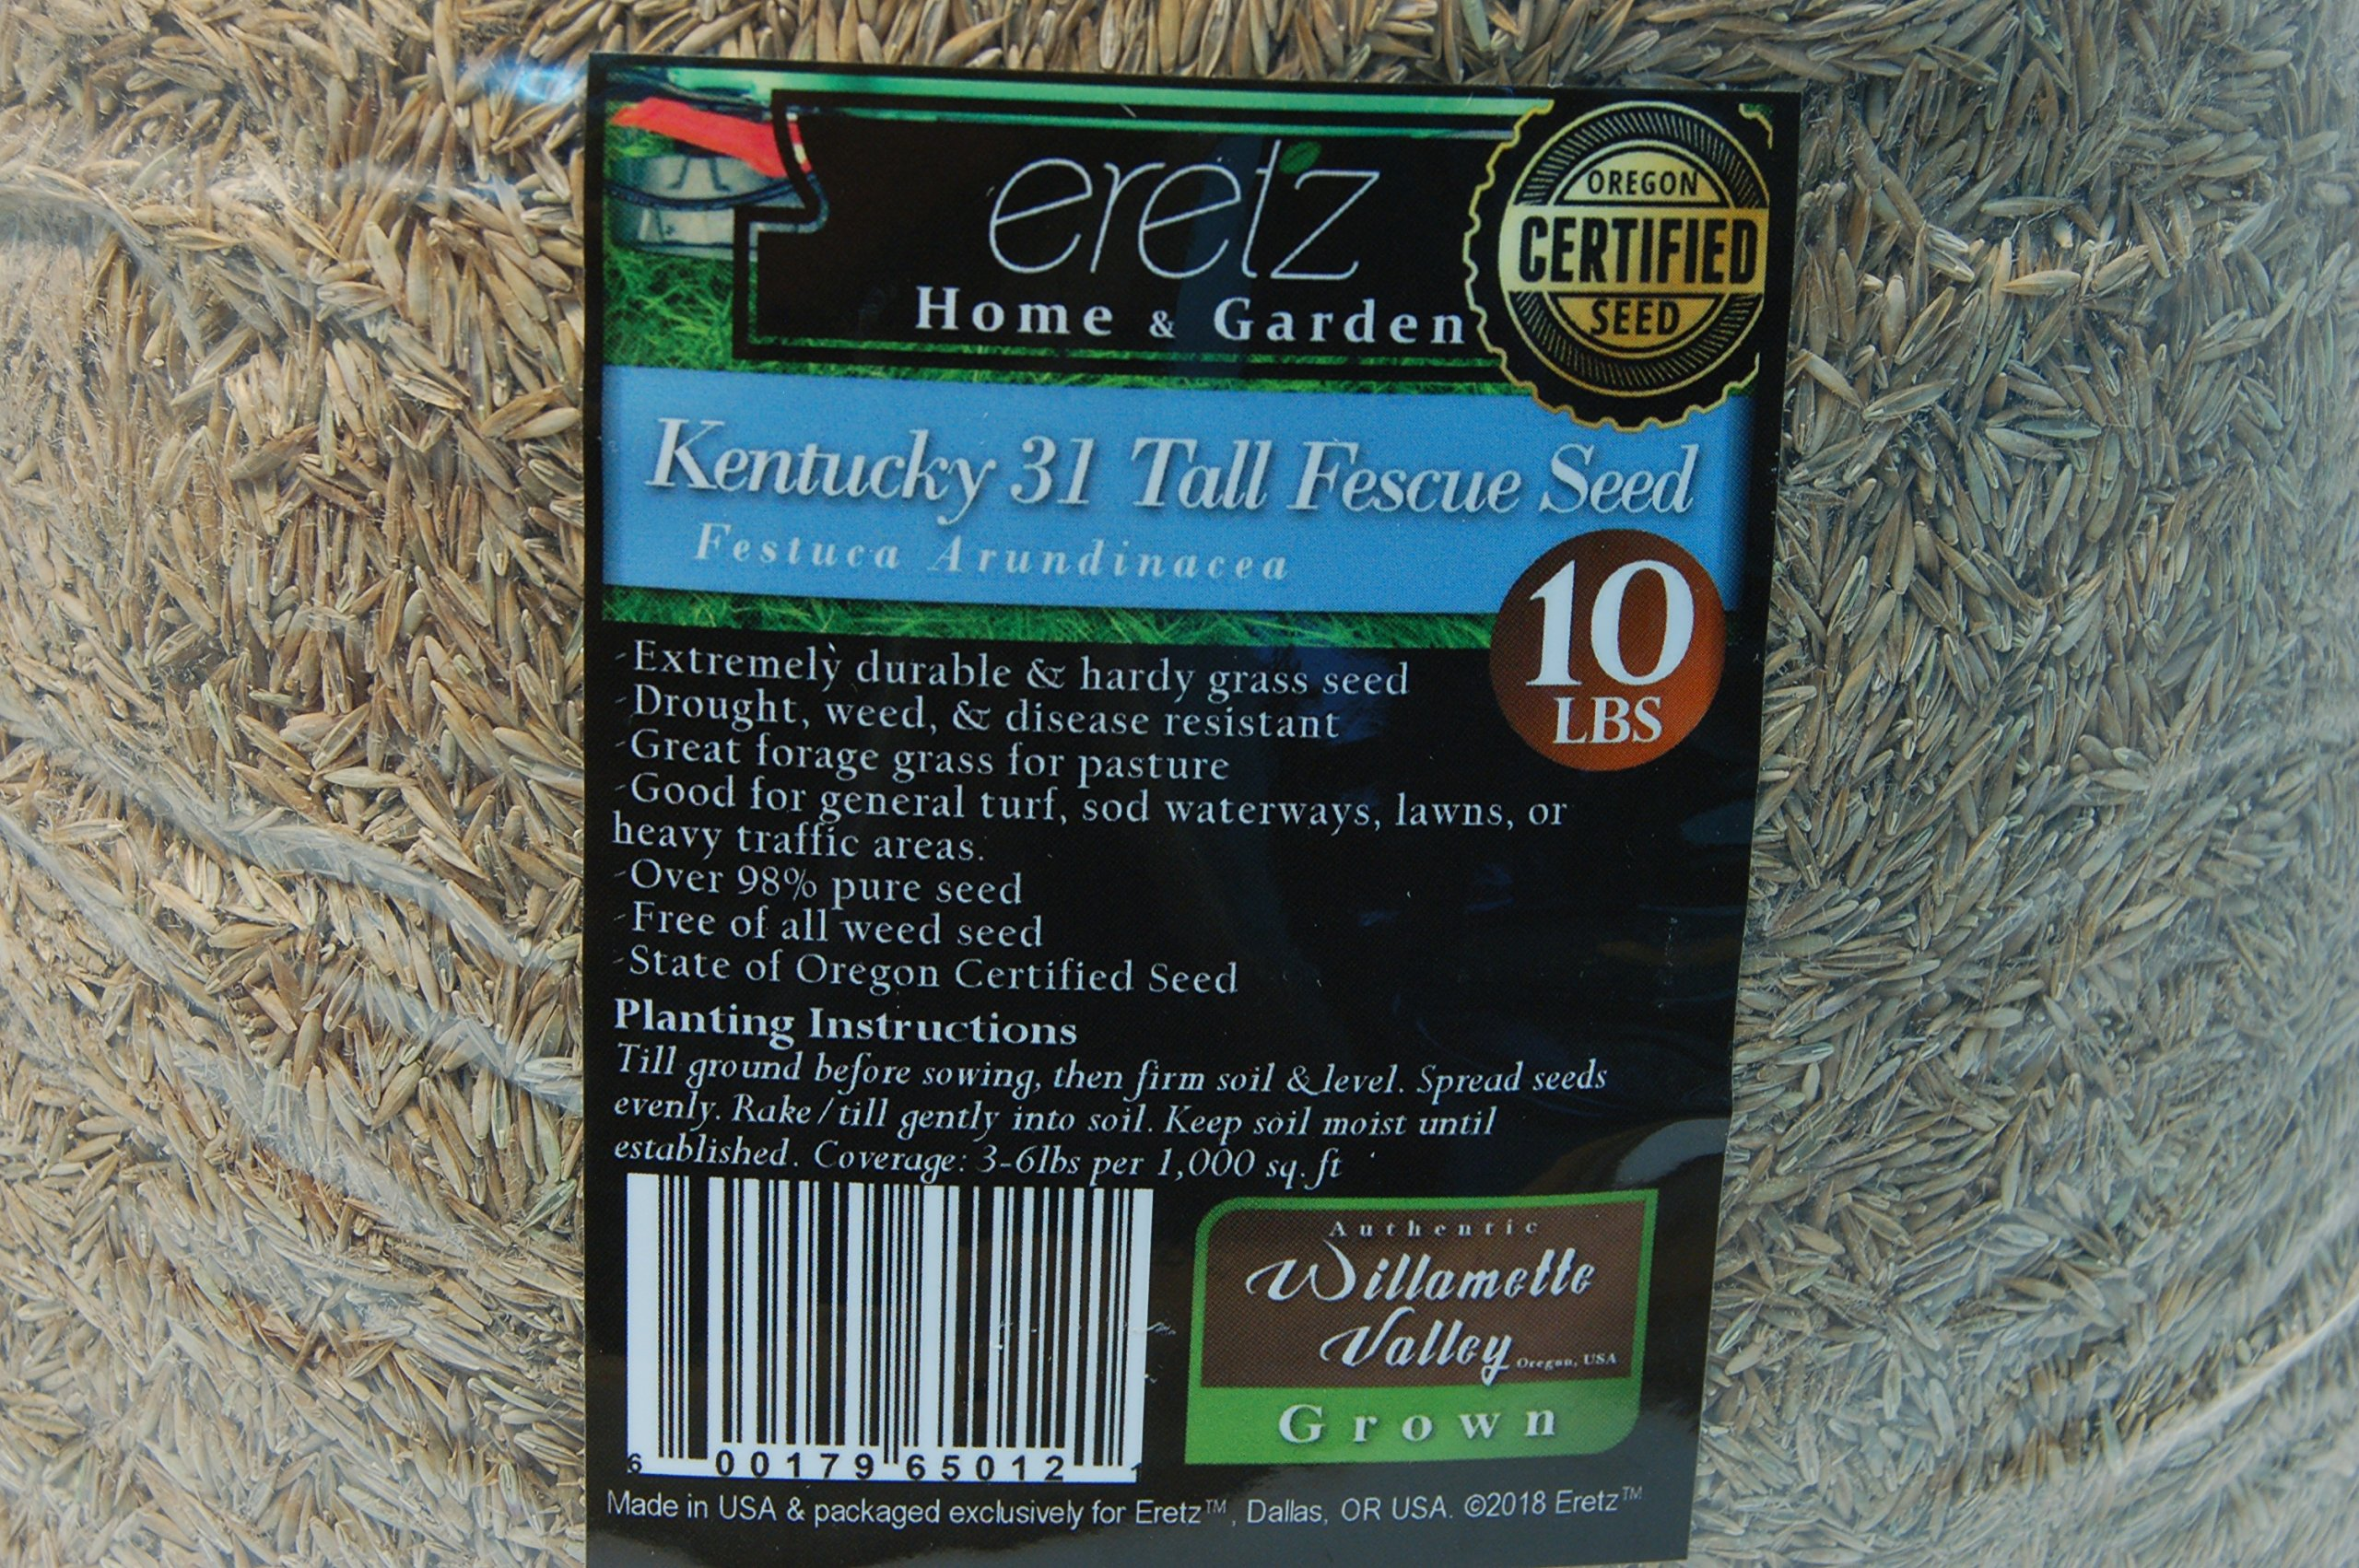 Kentucky 31 Tall Fescue Grass Seed by Eretz - Willamette Valley, Oregon Grown (10lbs)